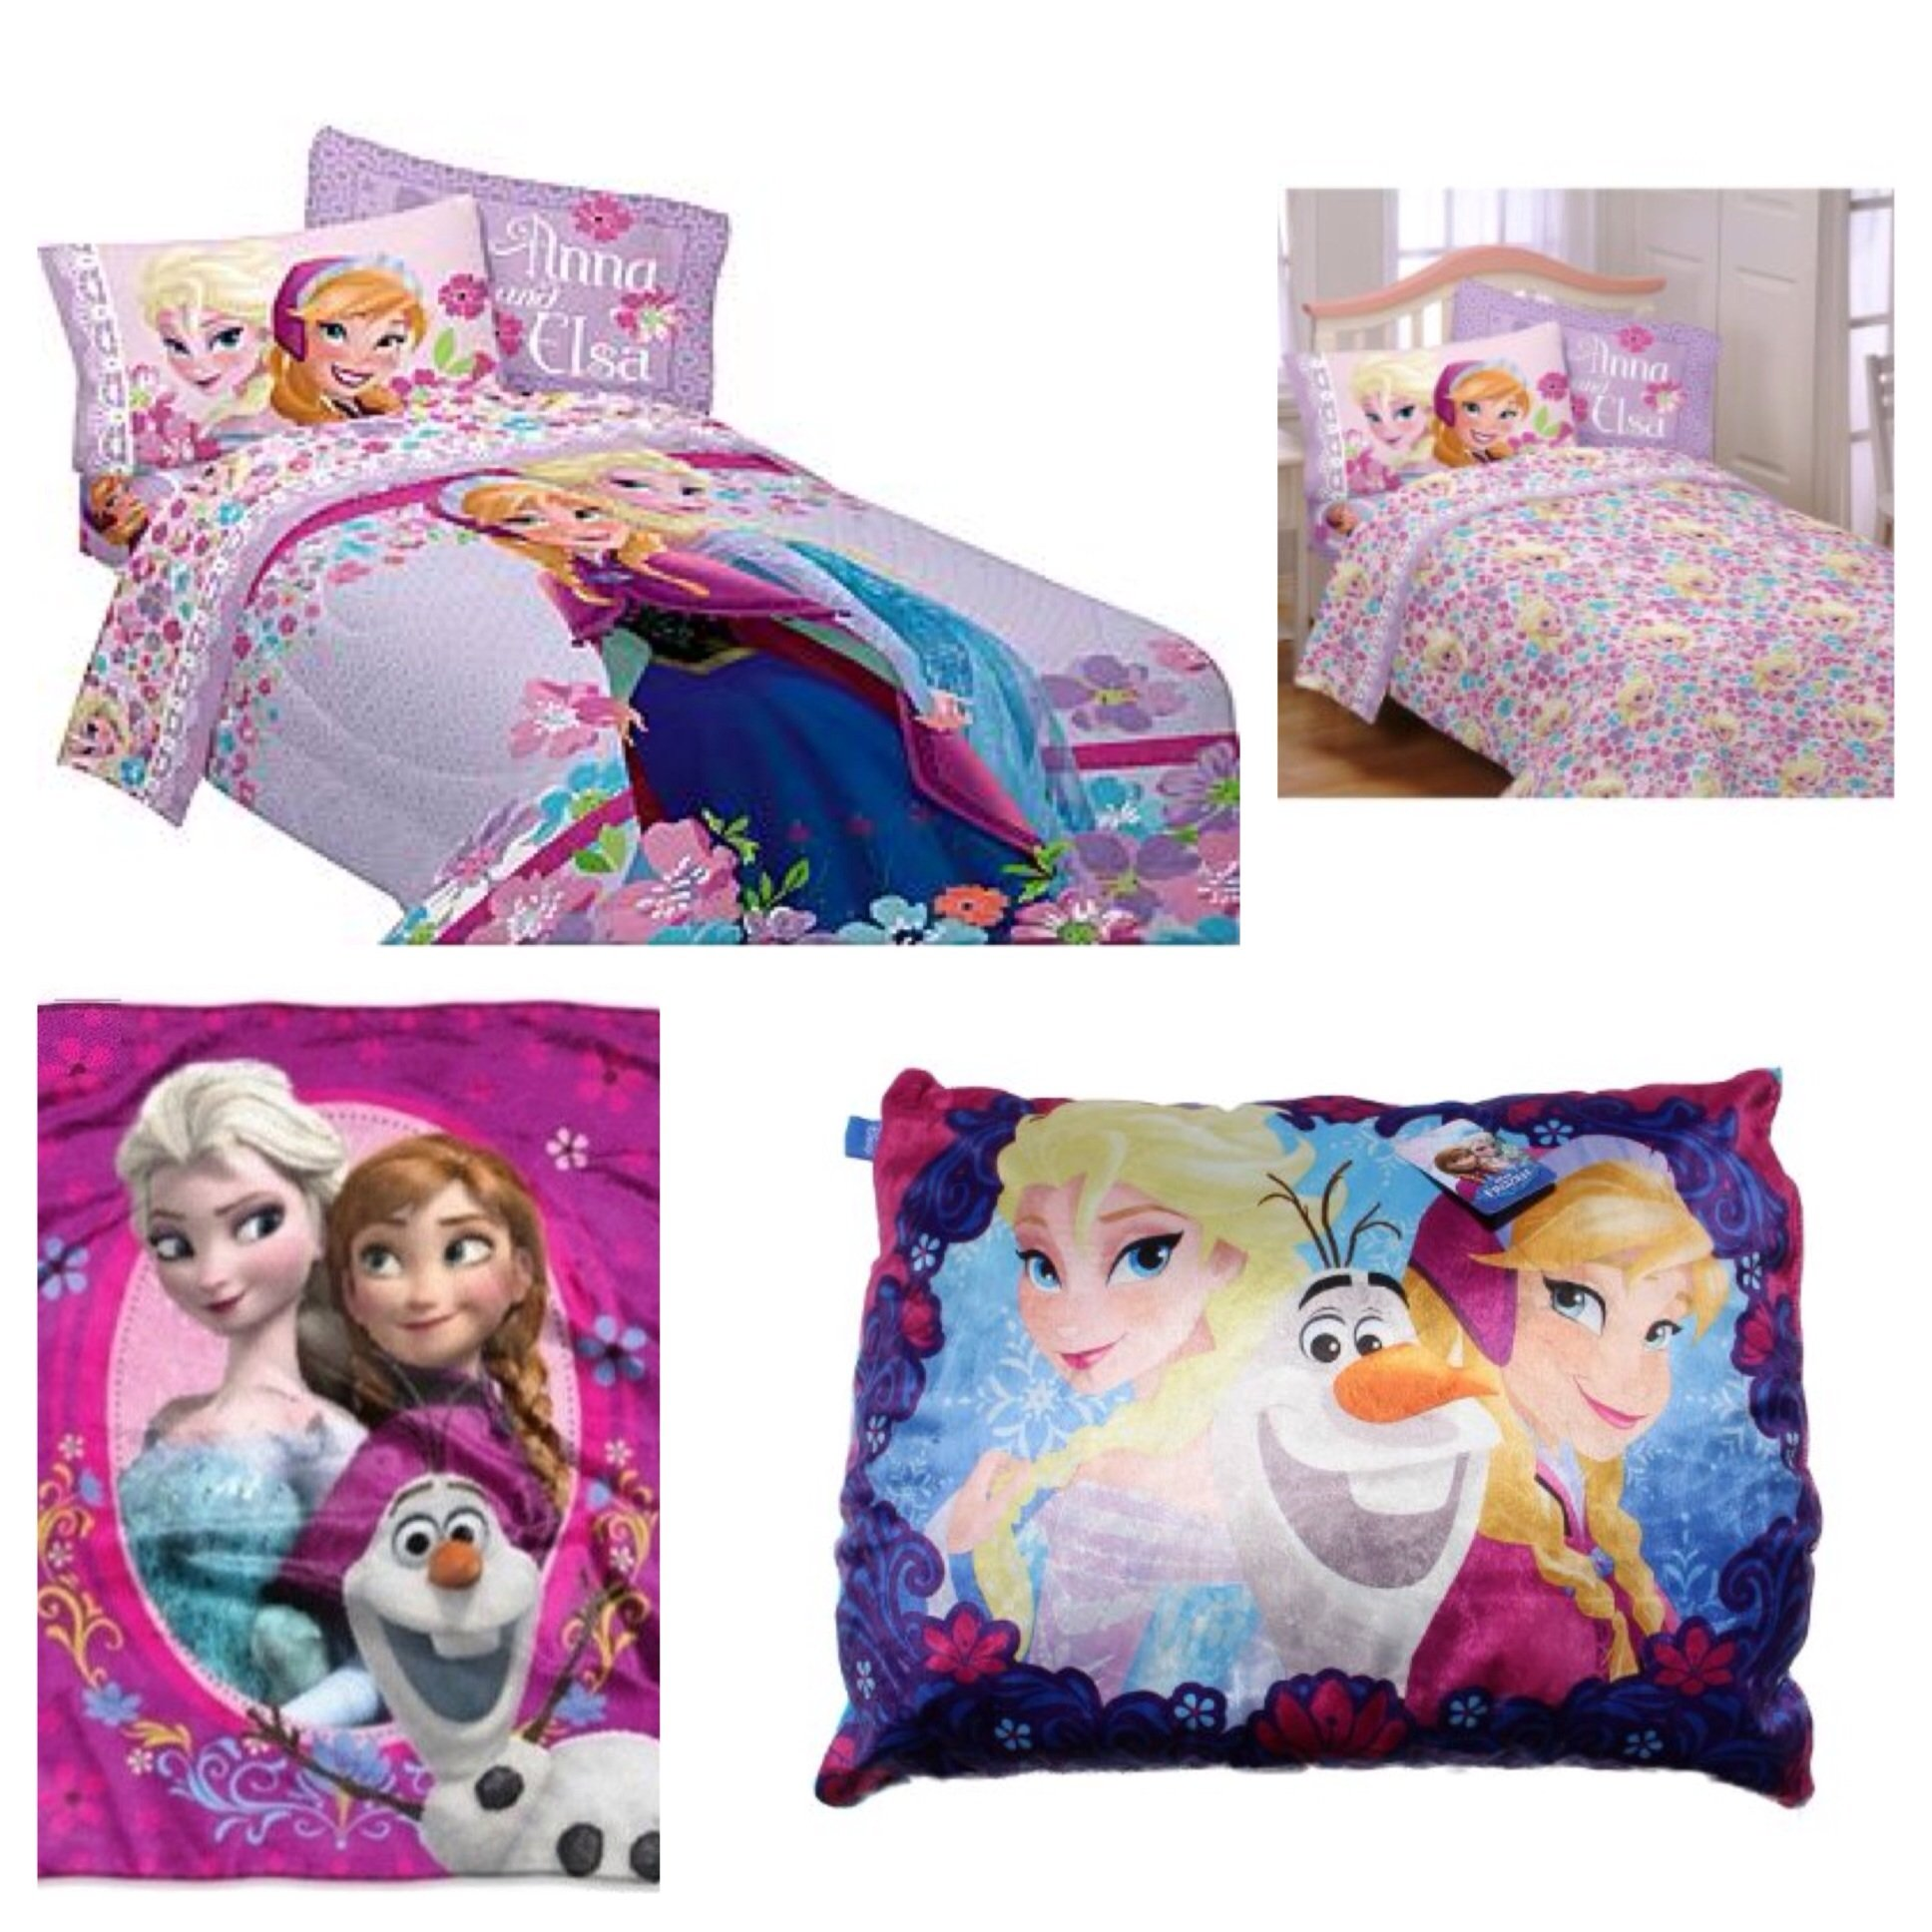 Disney Frozen Love Blooms Complete 6 Piece Twin Bed in a Bag - Comforter, 3 Piece Sheet Set, Spring Zing Plush Throw, Frozen Plush Standard Bed Pillow